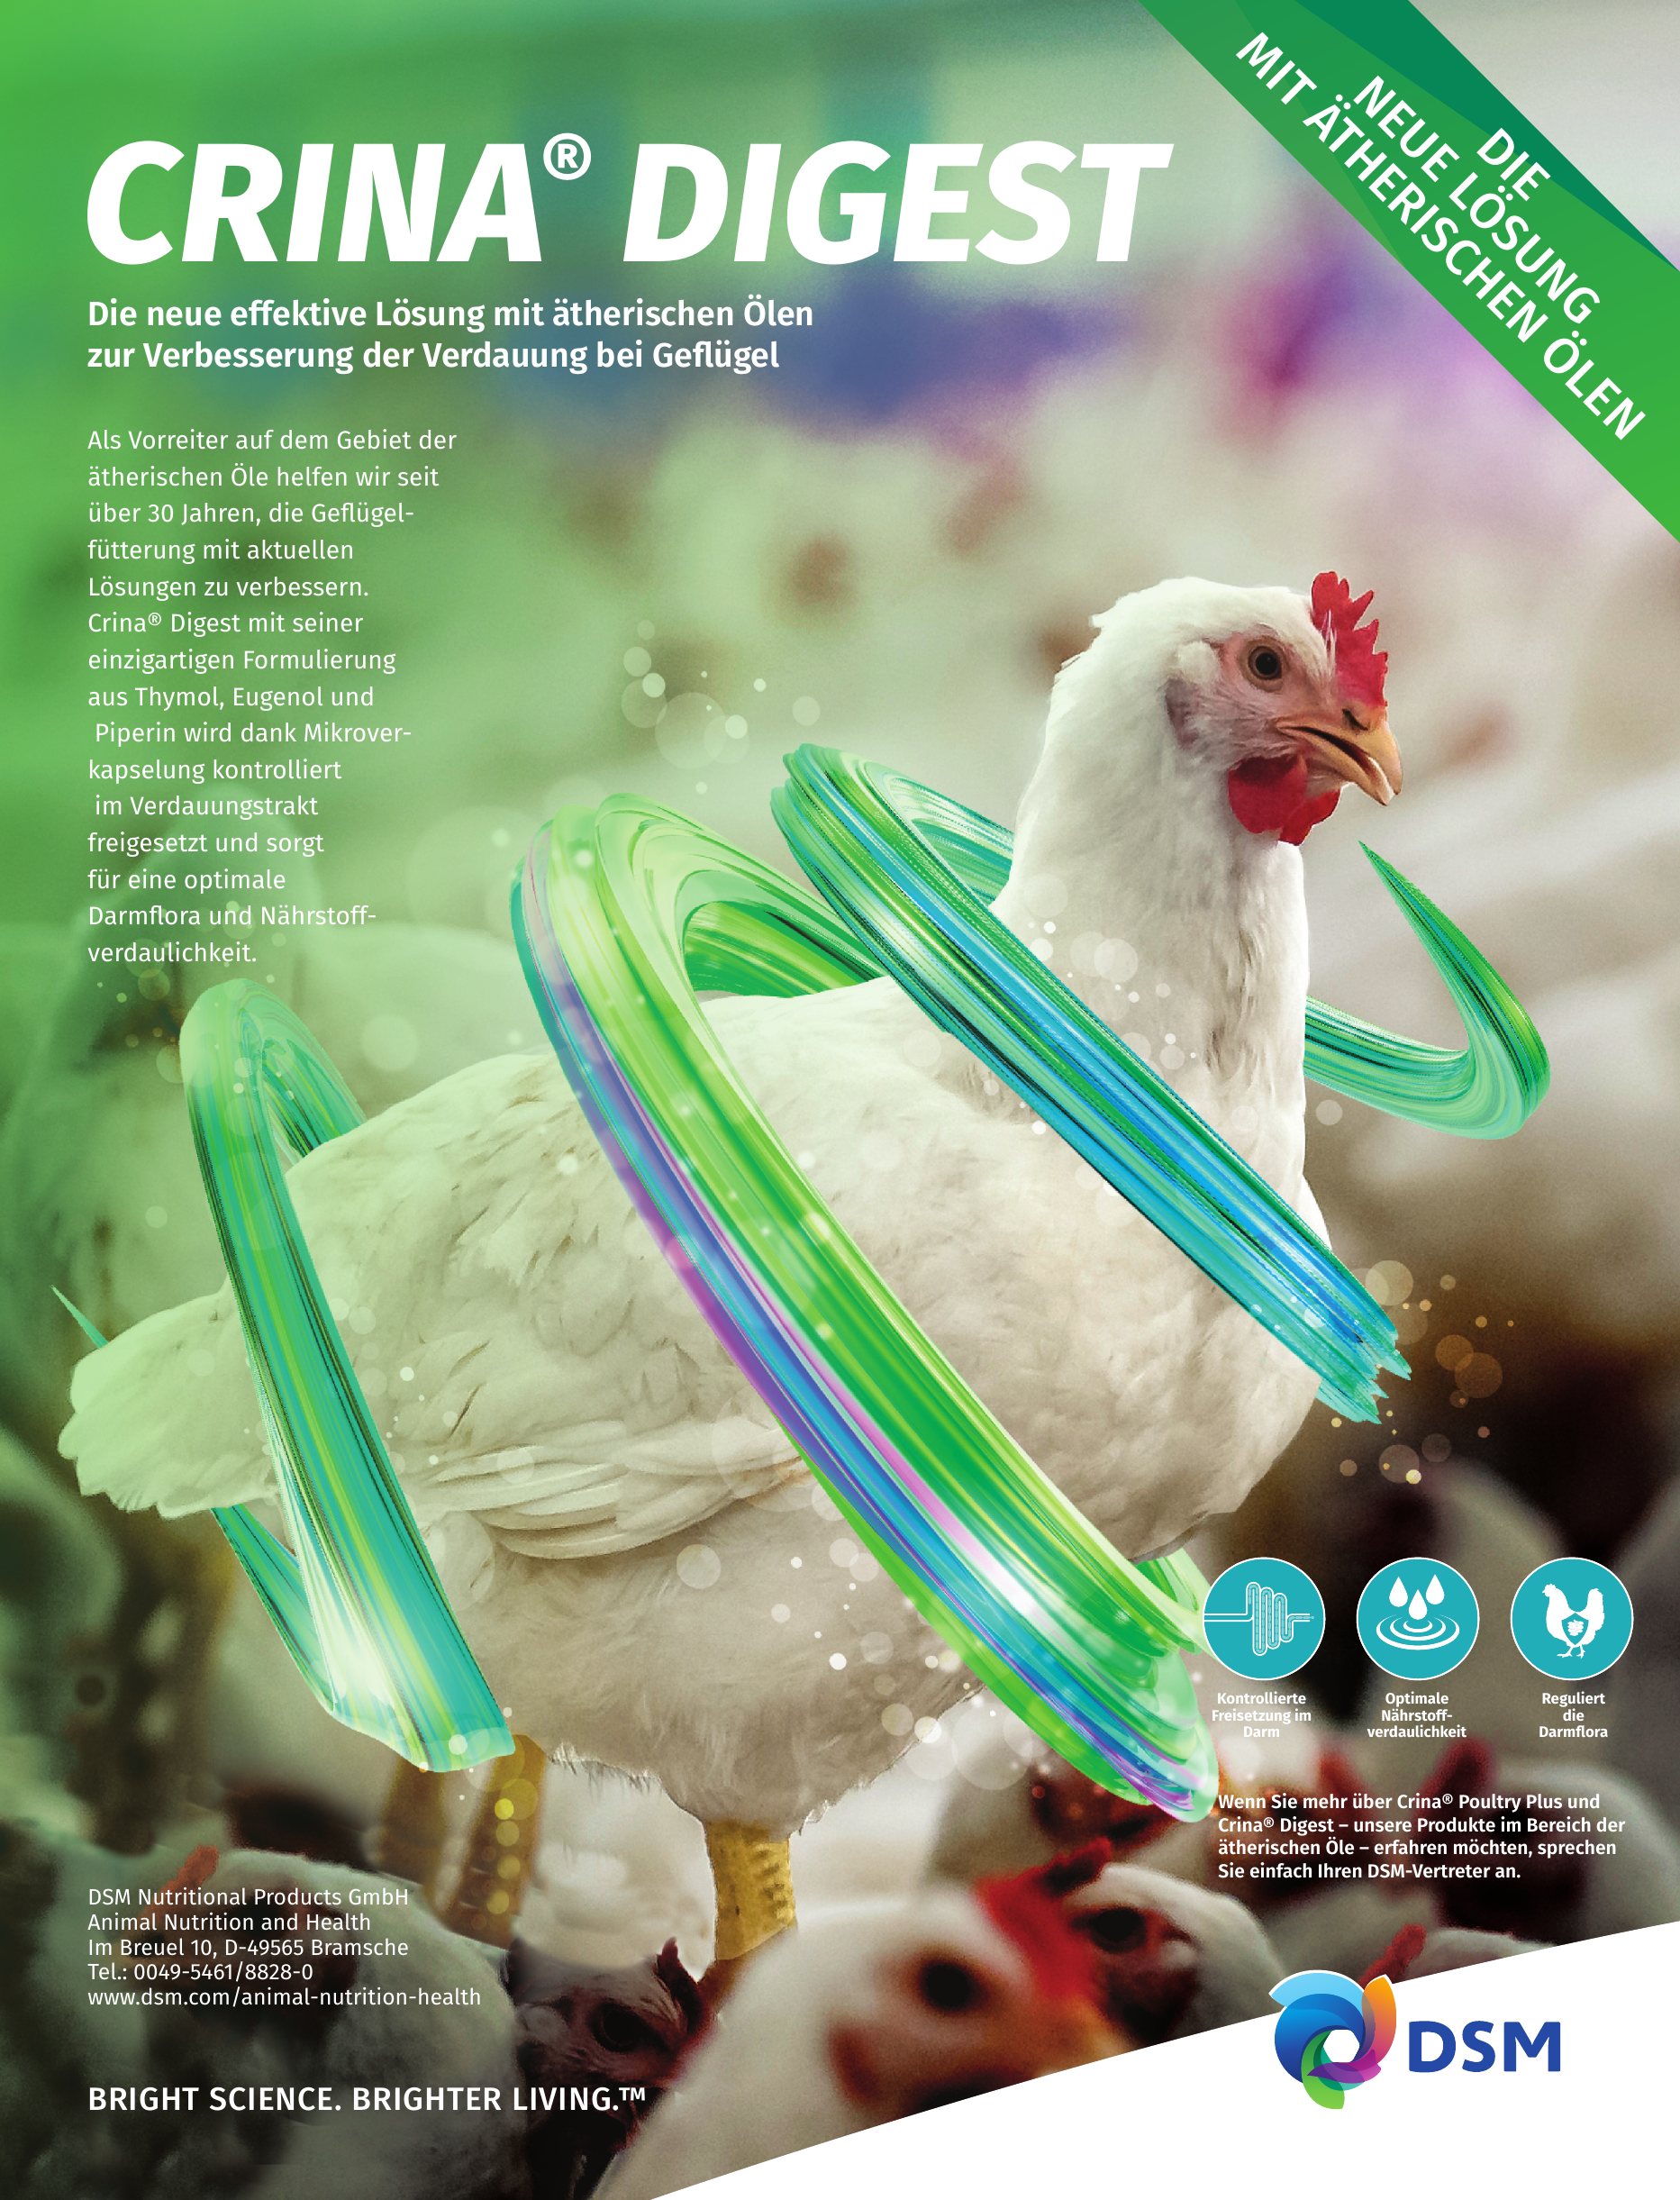 DSM Nutritional Products GmbH - Animal Nutrition and Health